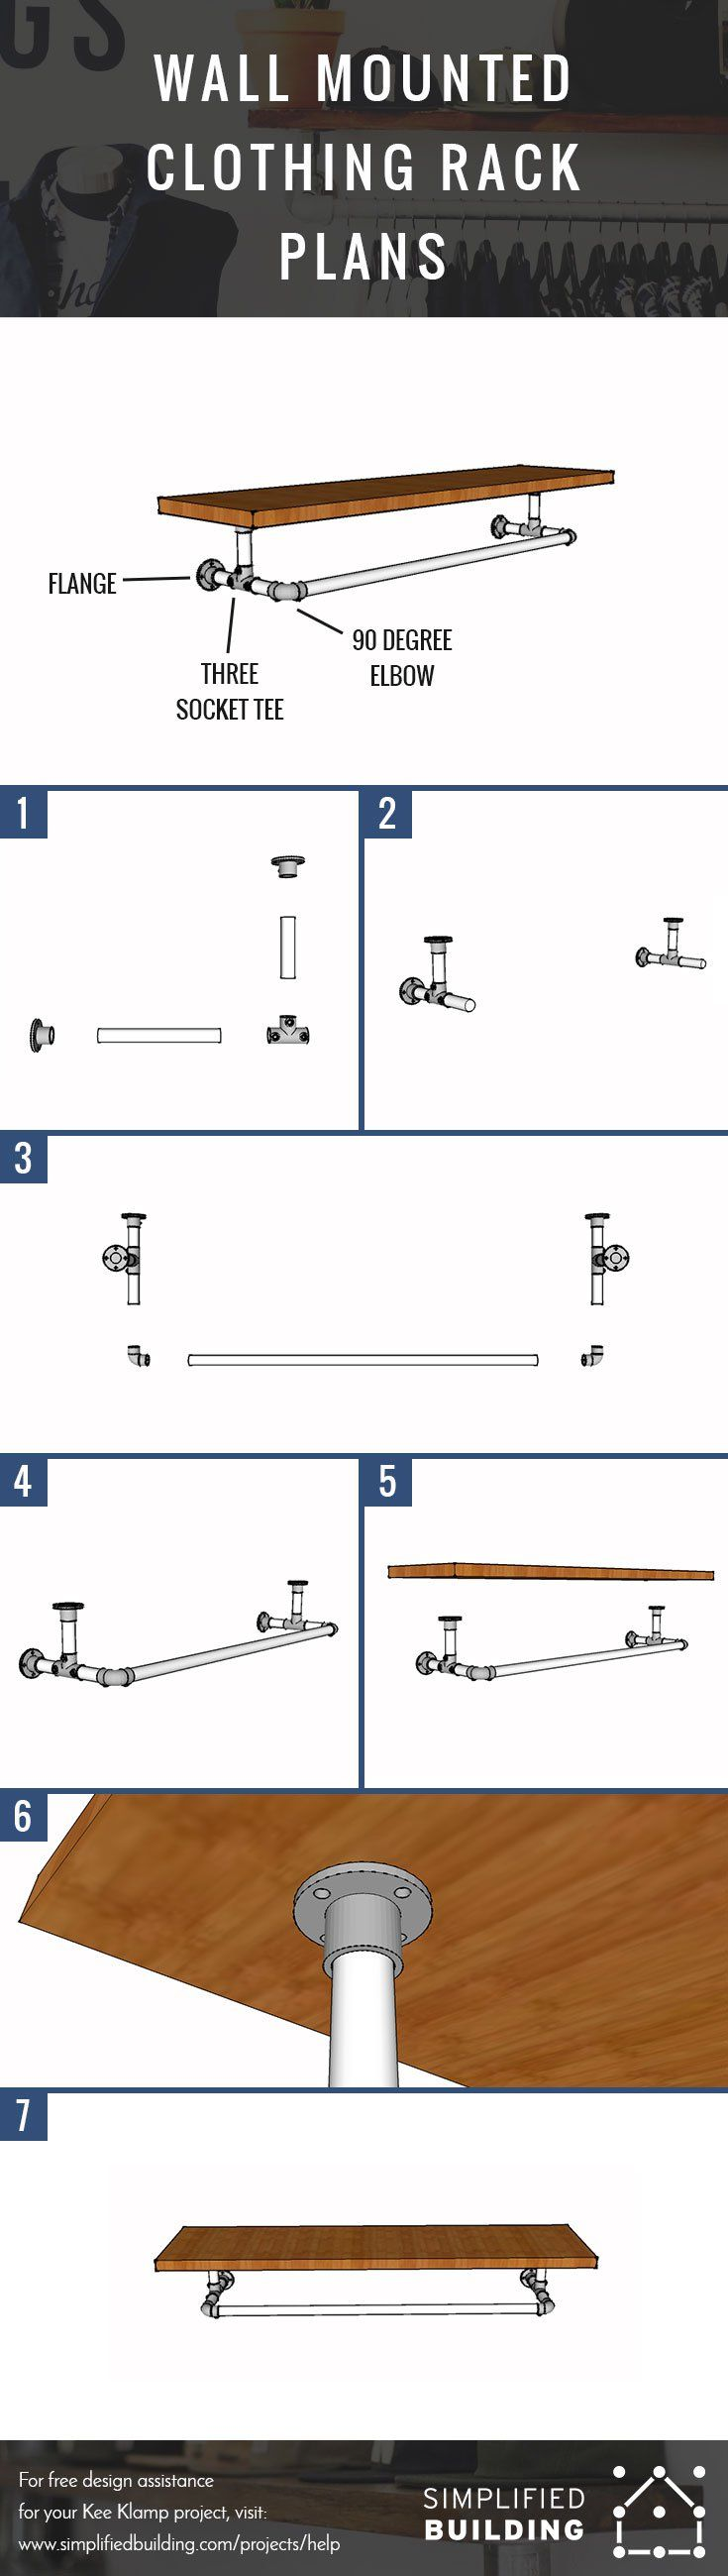 Wall mounted clothing rack plans business ideas in